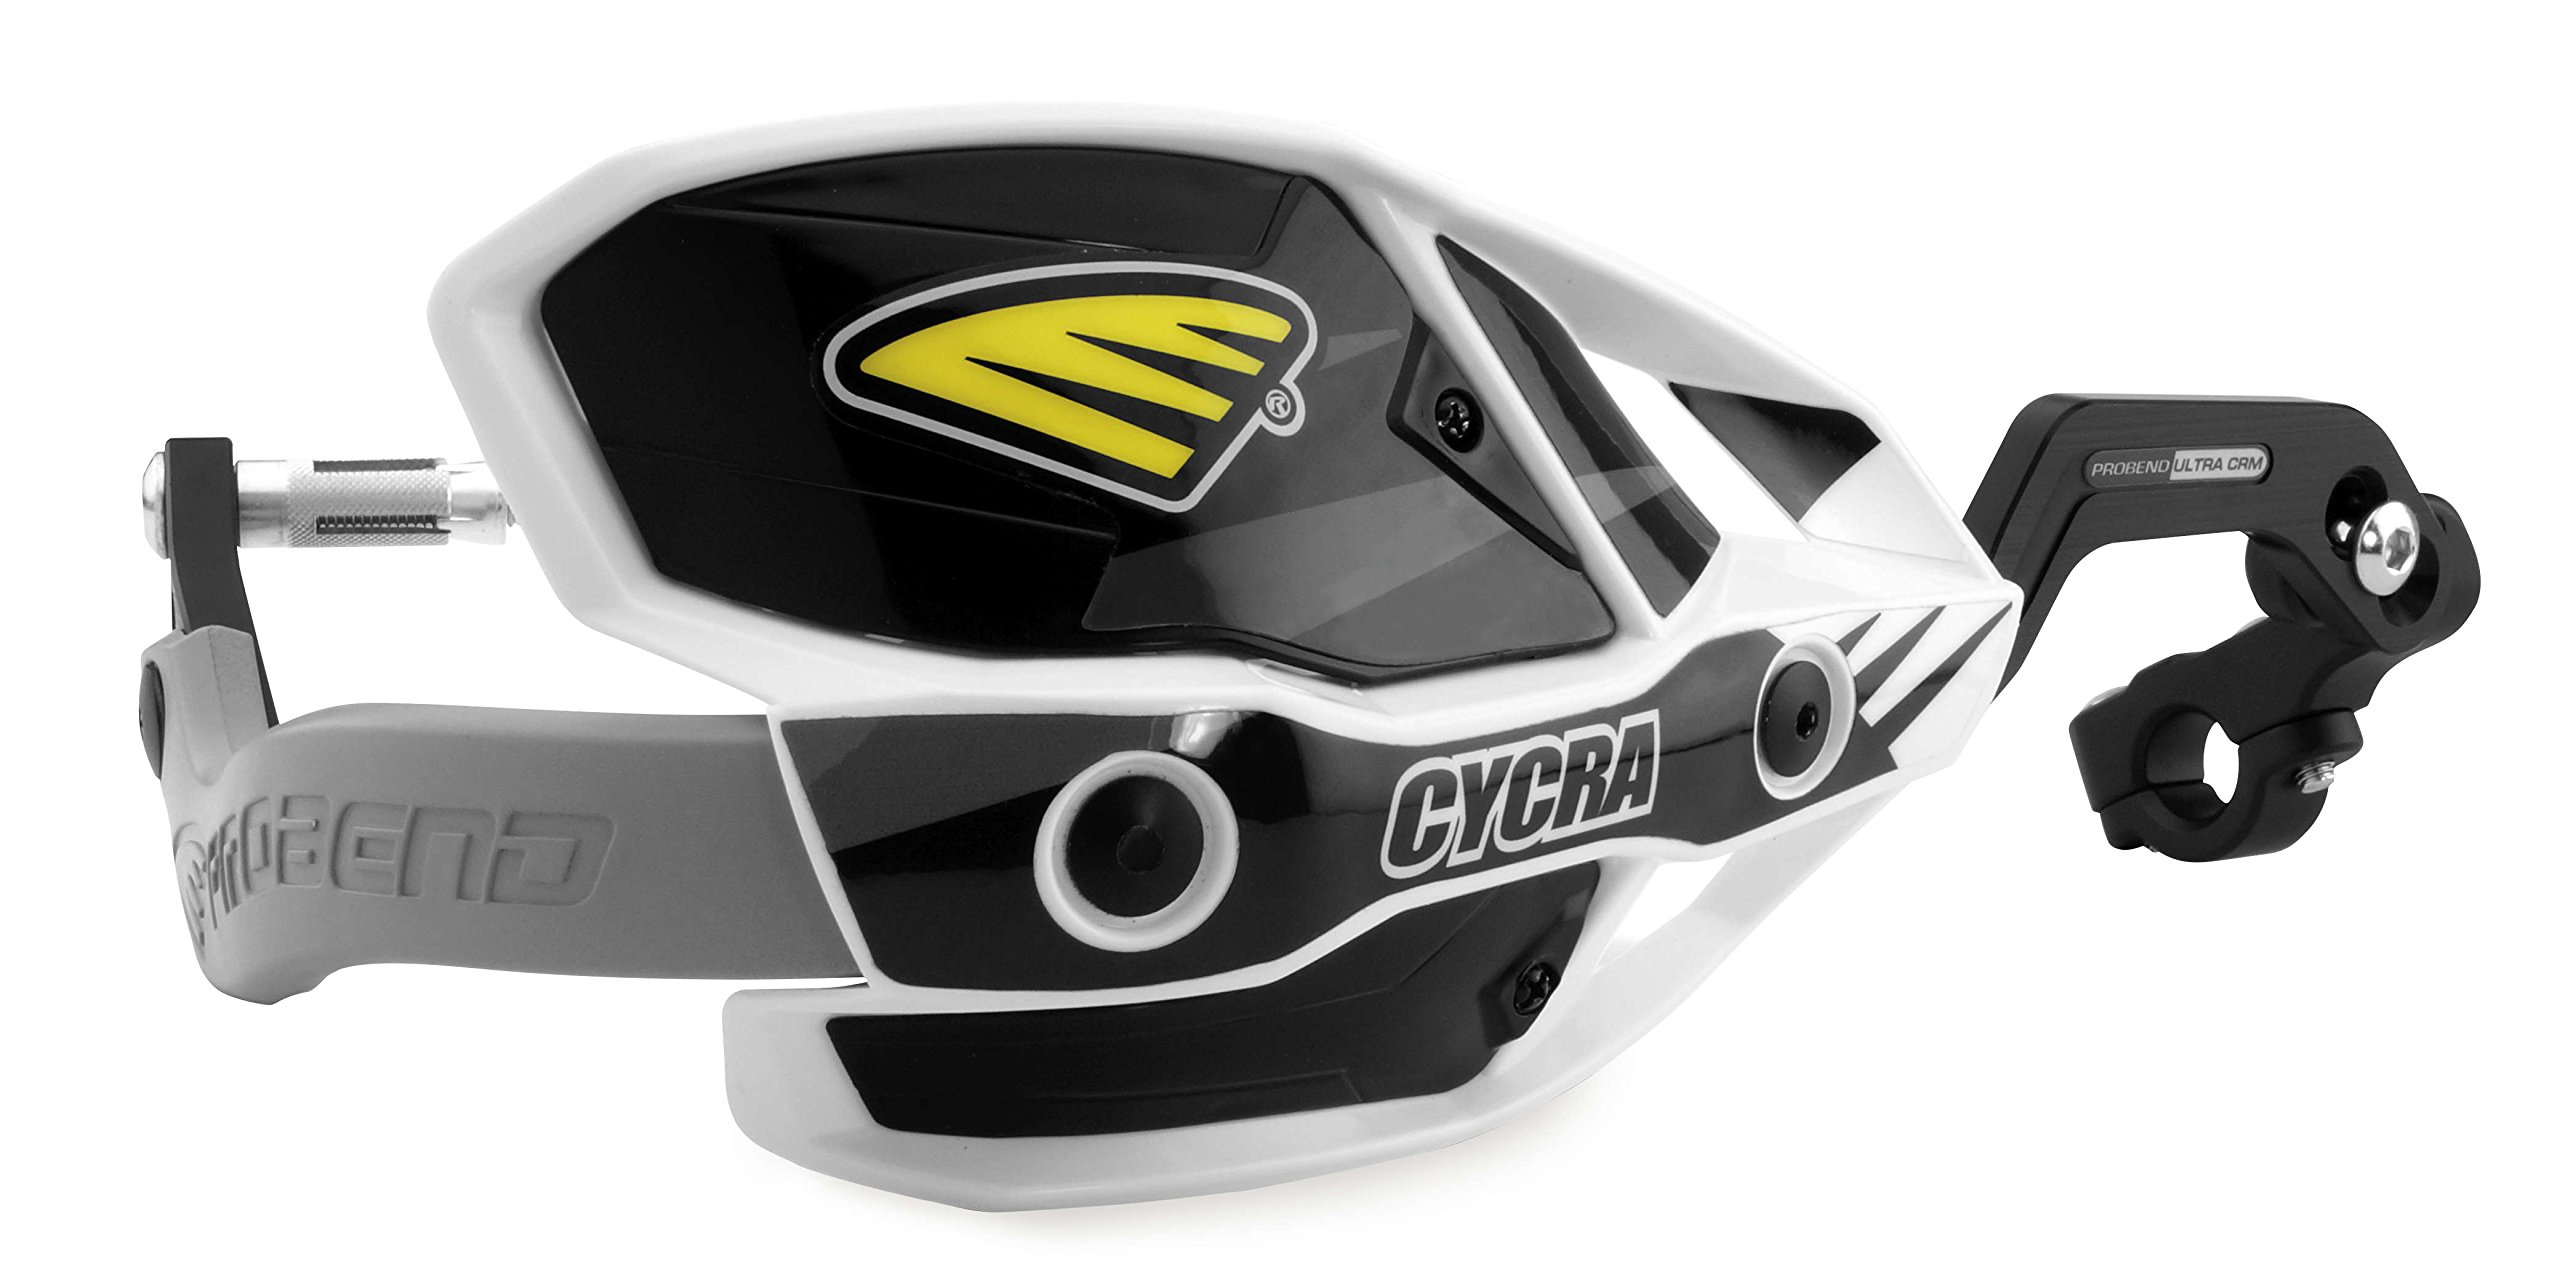 Cycra 1CYC-7407-12X Ultra ProBend CRM Handguards - 7/8in. Clamp - White/Black/Gray